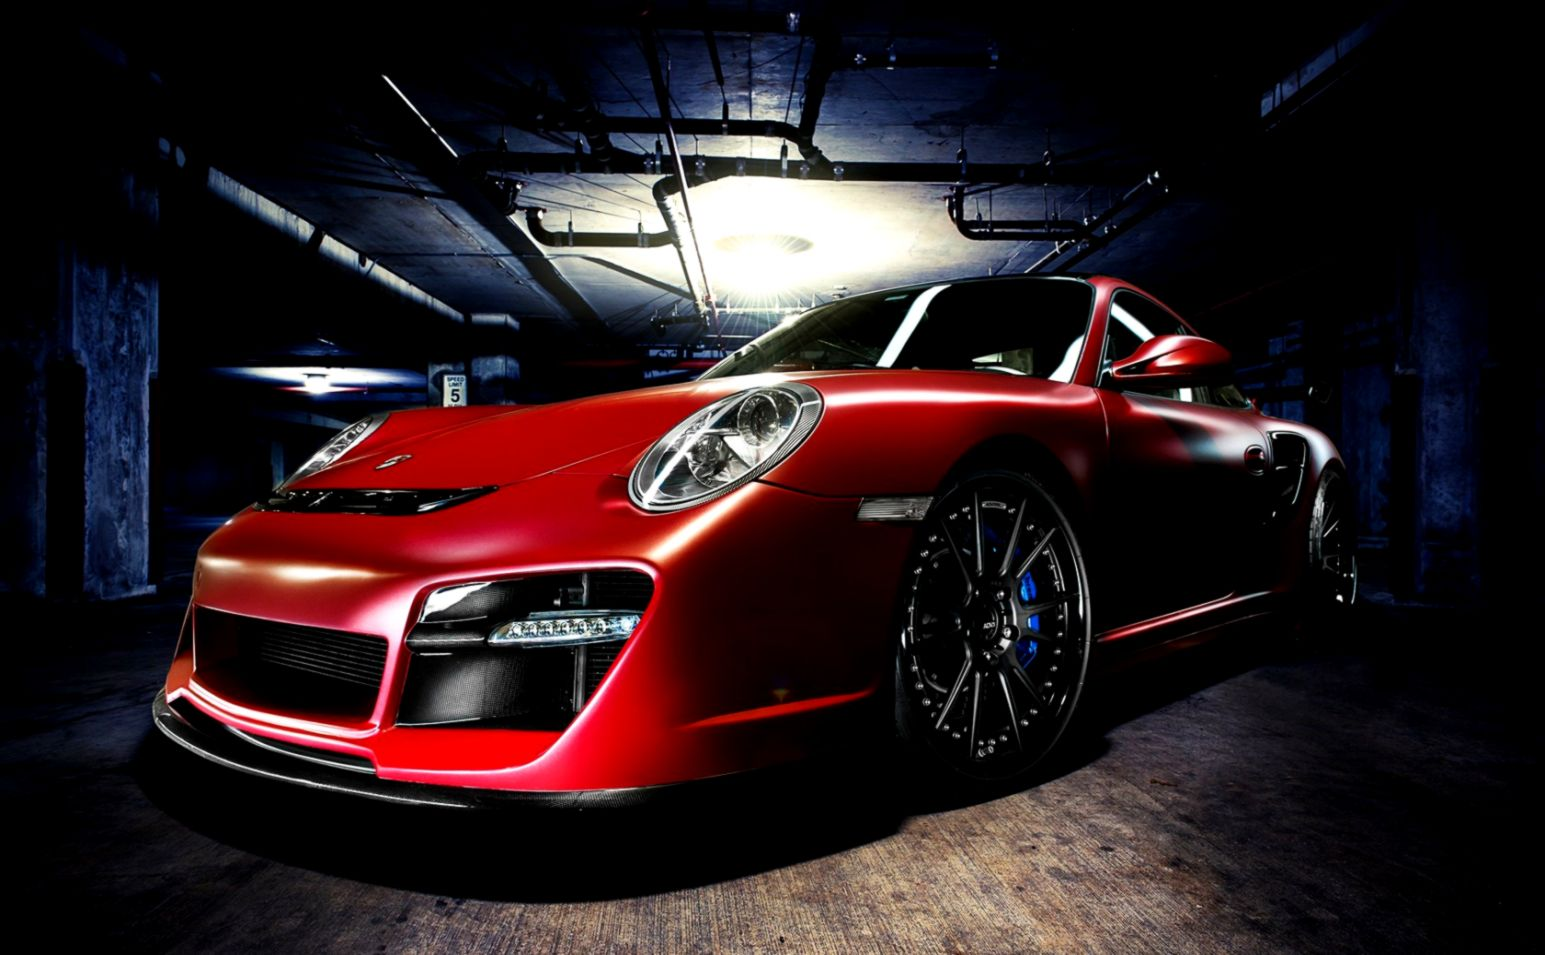 Porsche 911 Turbo Red Car Garage Photo Hd Wallpapers